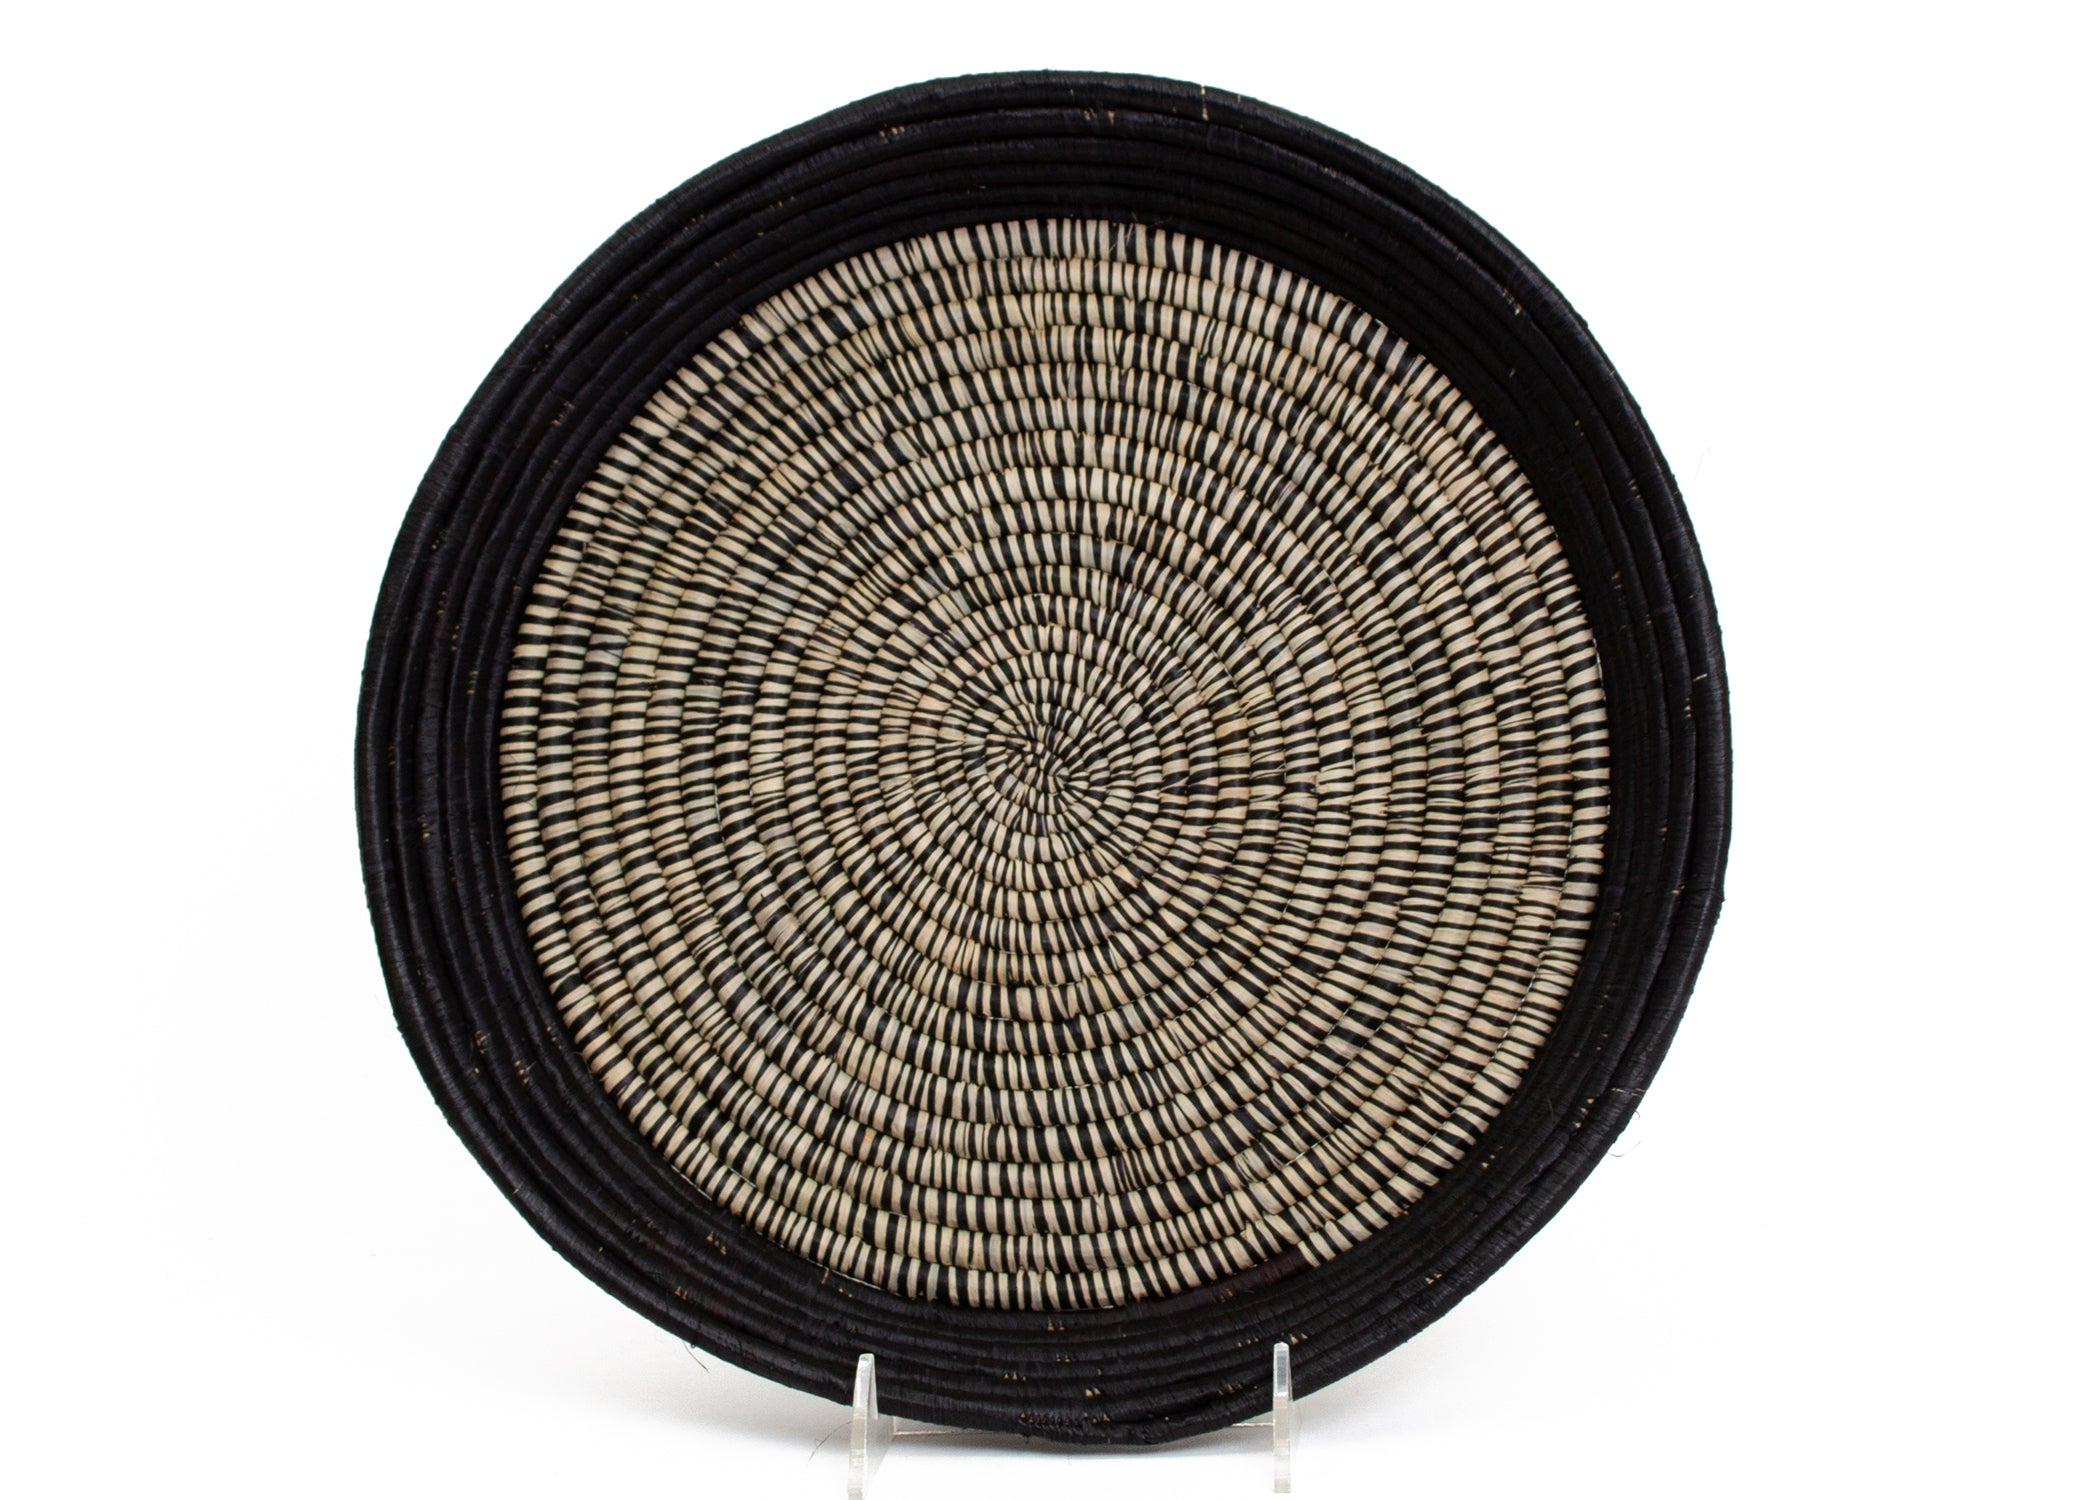 Black Heathered Raffia Tray - KAZI - Artisan made high quality home decor and wall art